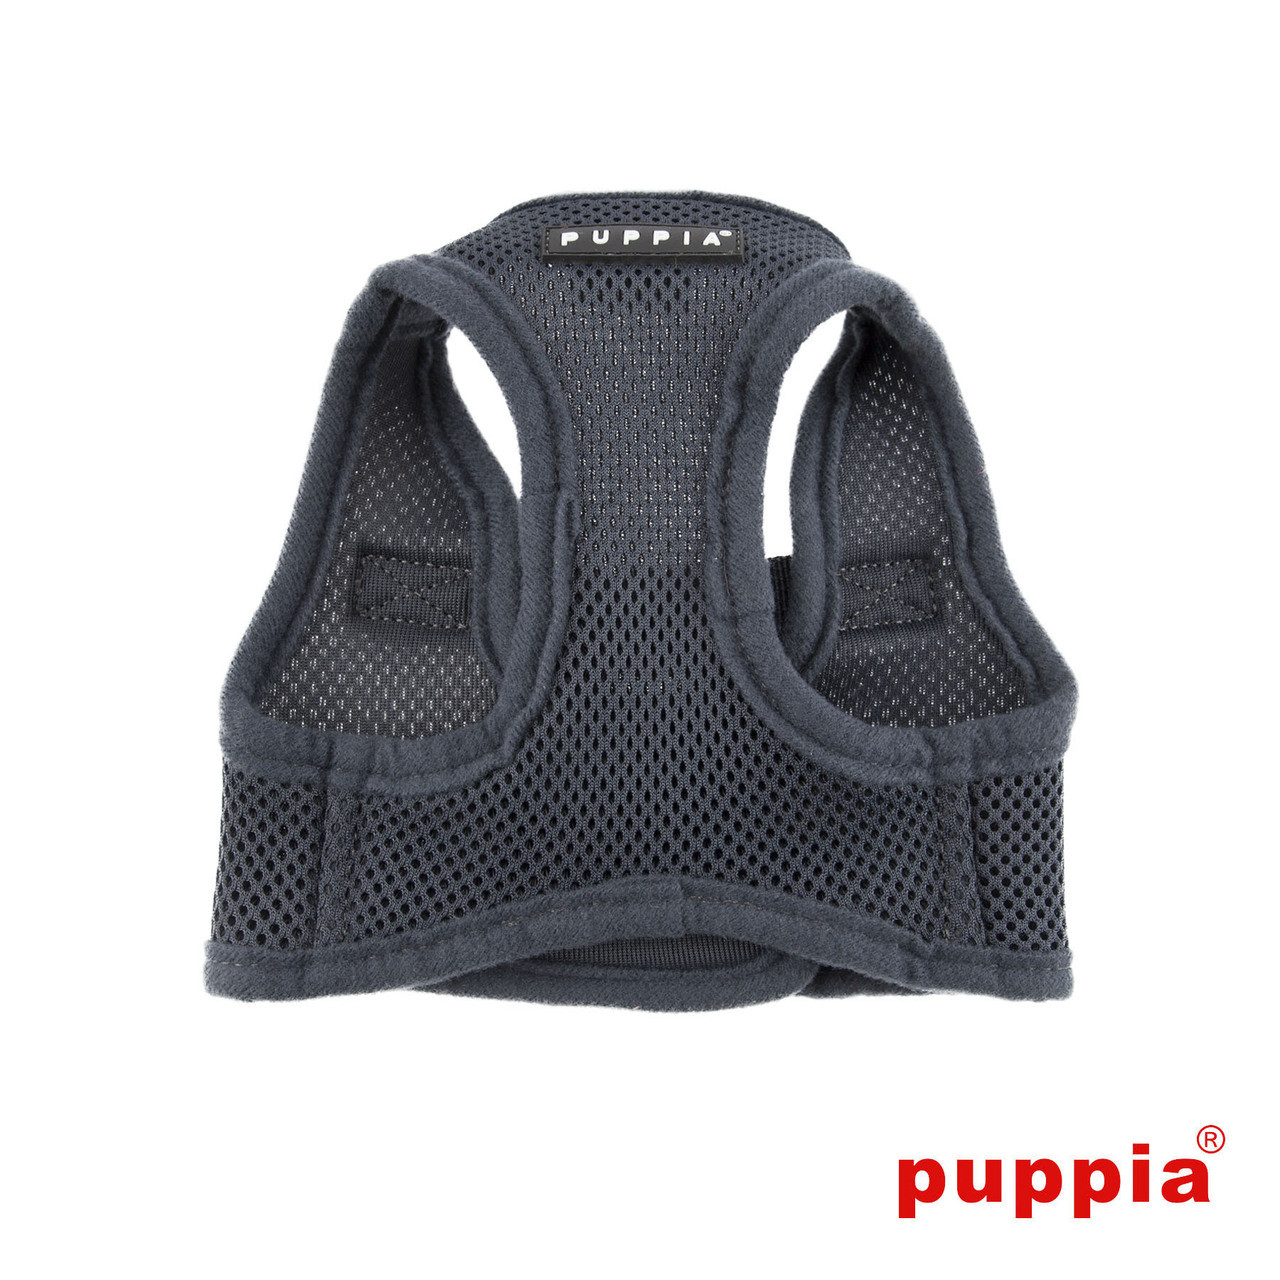 Puppia Soft Mesh Vest in Gray  chest view